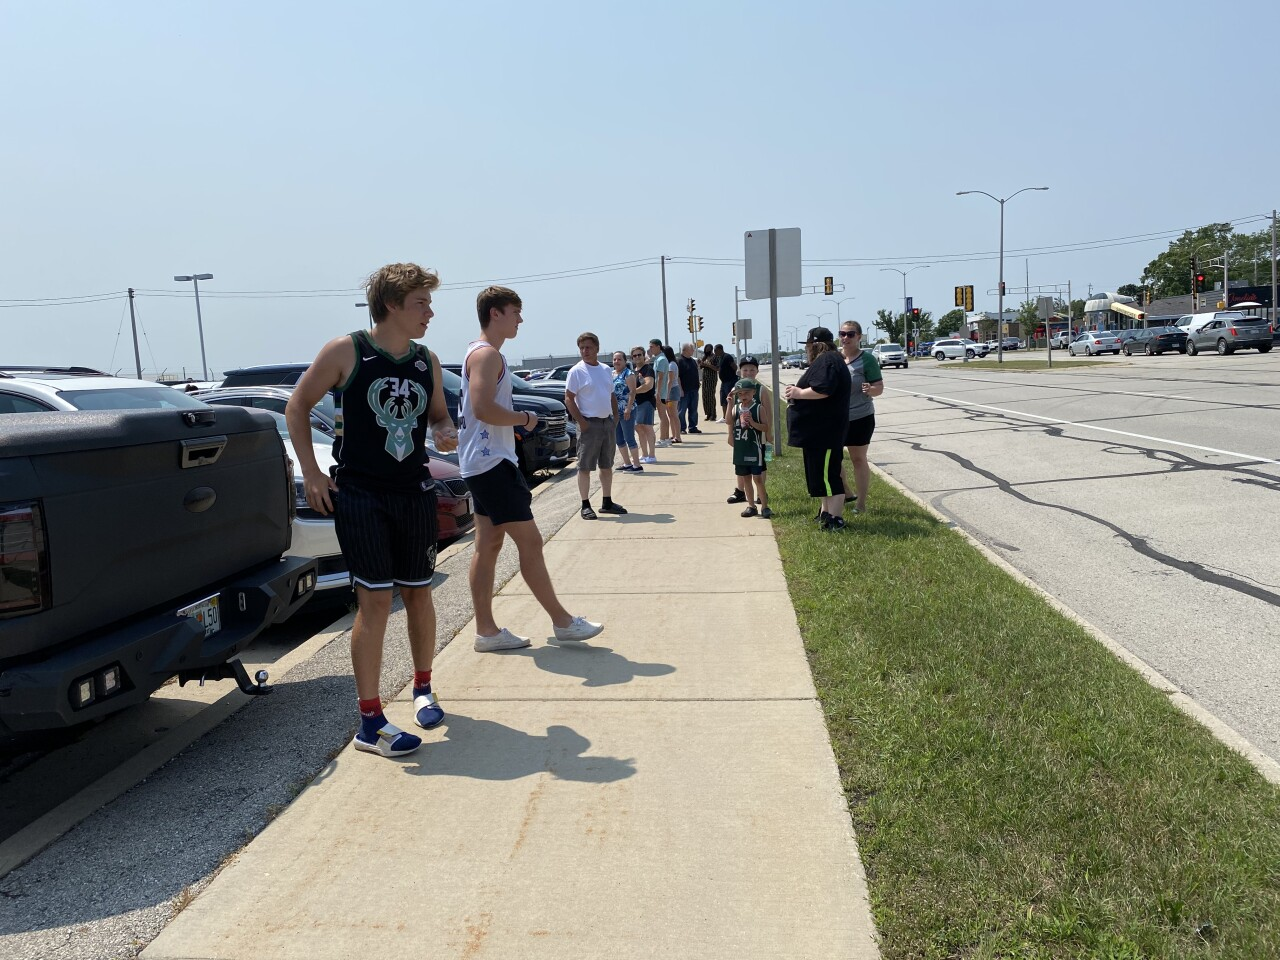 Fans waiting for the team to land at Mitchell Airport